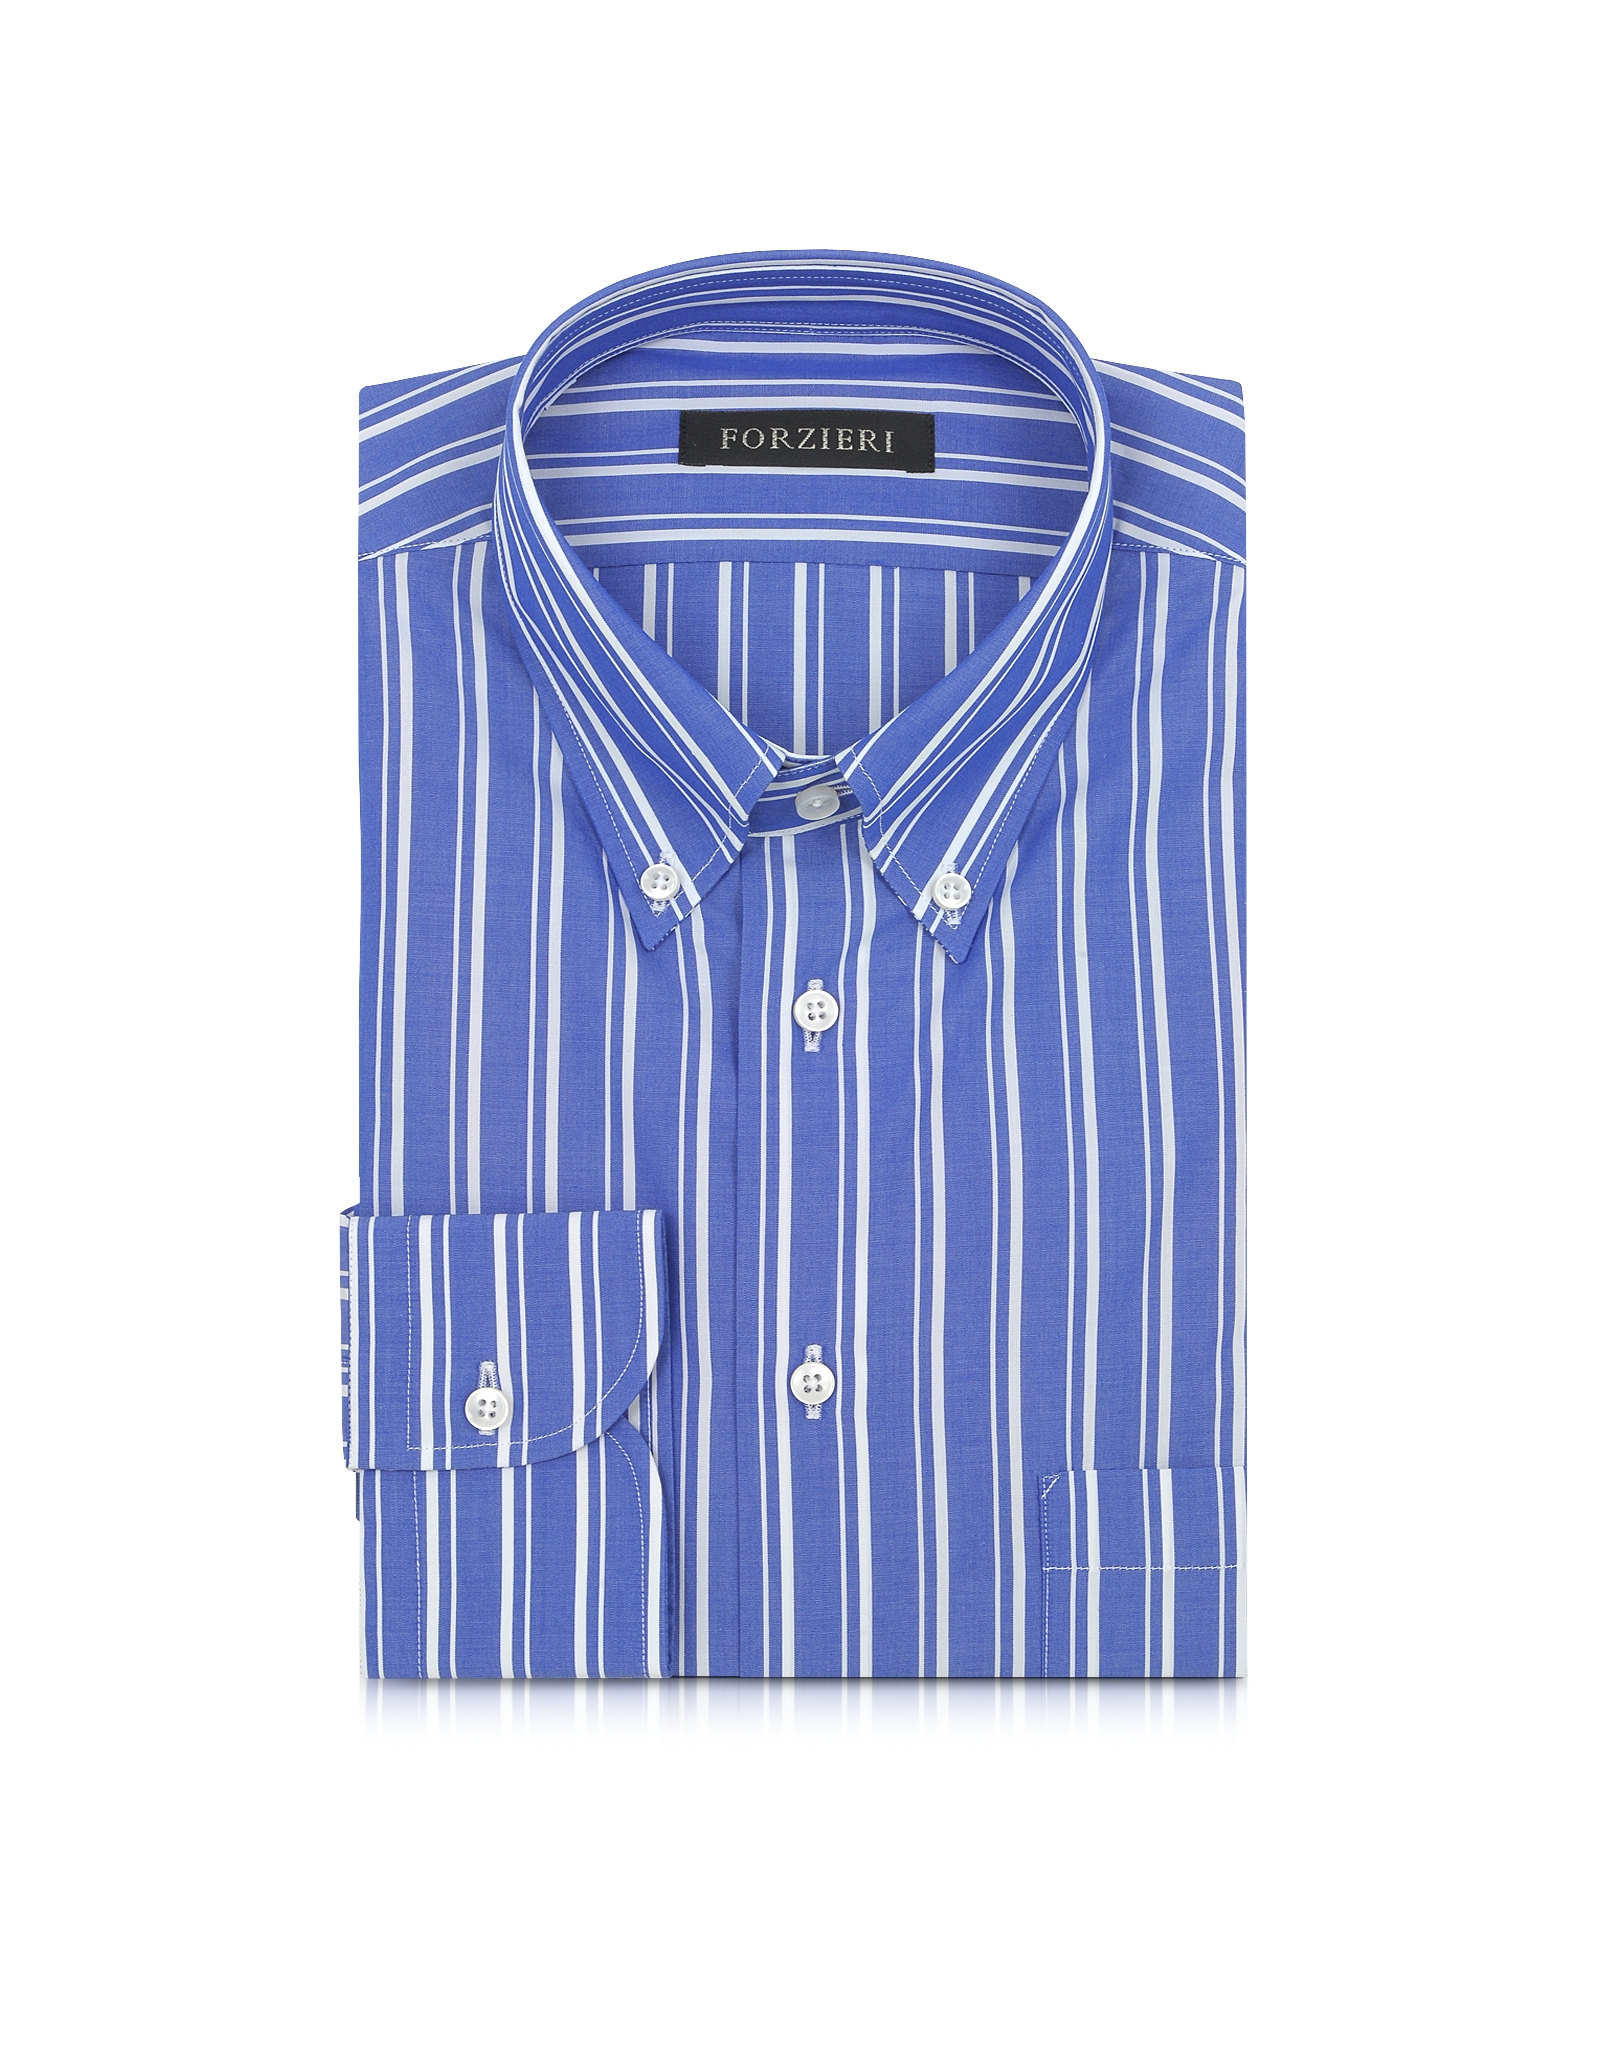 Lyst forzieri blue and white striped button down men 39 s for Blue and white shirt mens